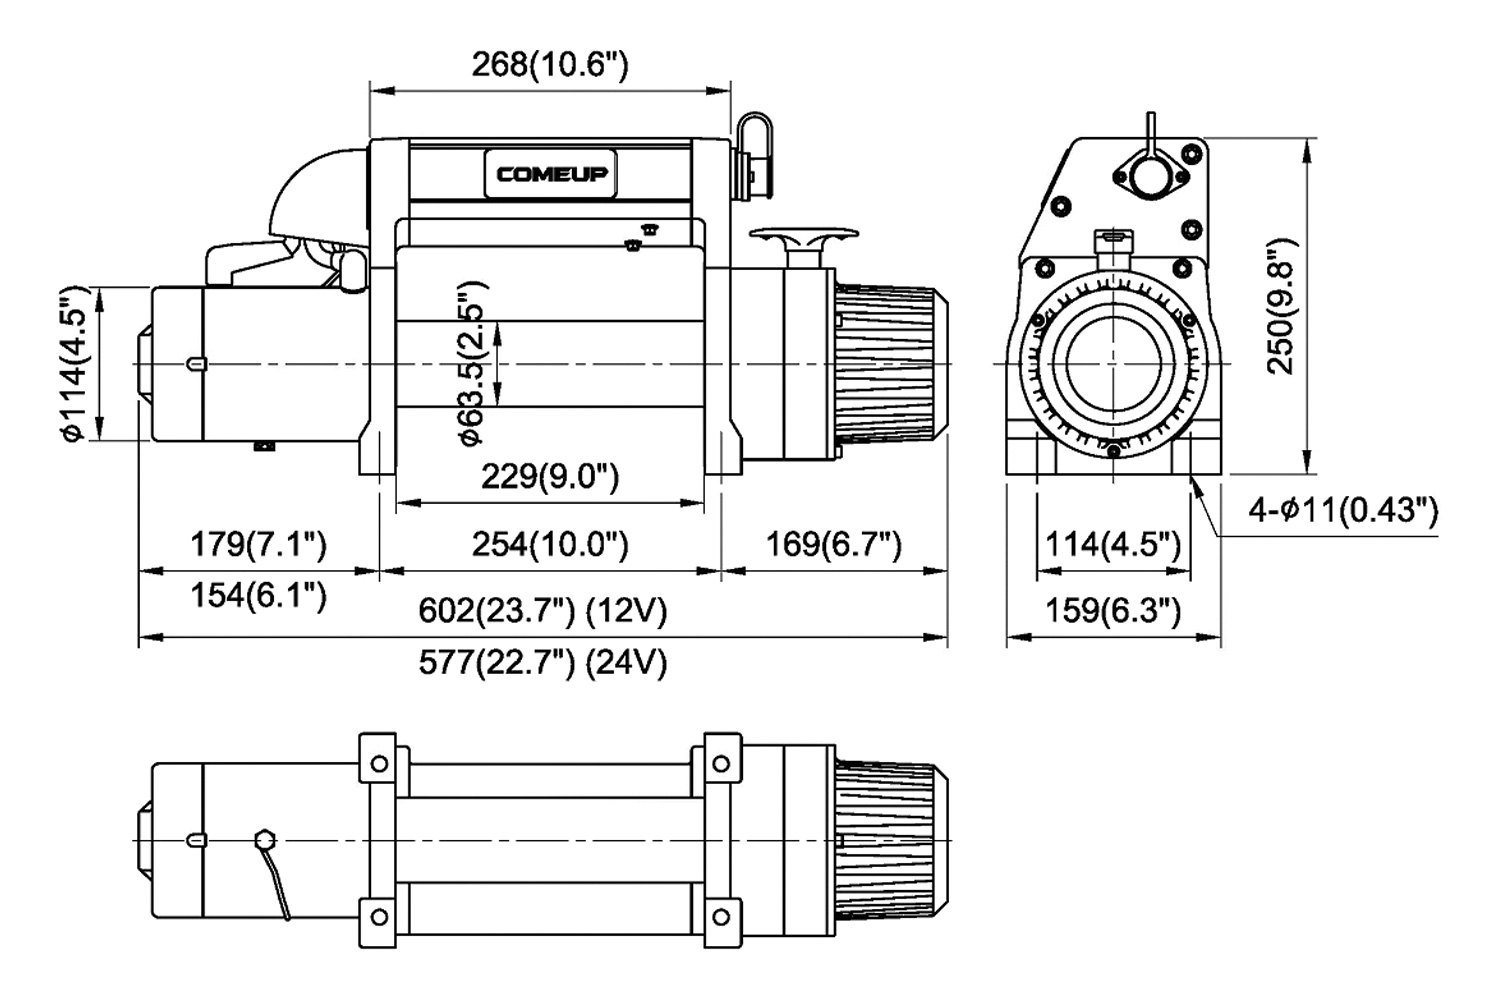 Comeup Dv Electric Winch With 2 Solenoids Wiring Diagram Wire Rope And Discrete Solenoidcomeup Synthetic